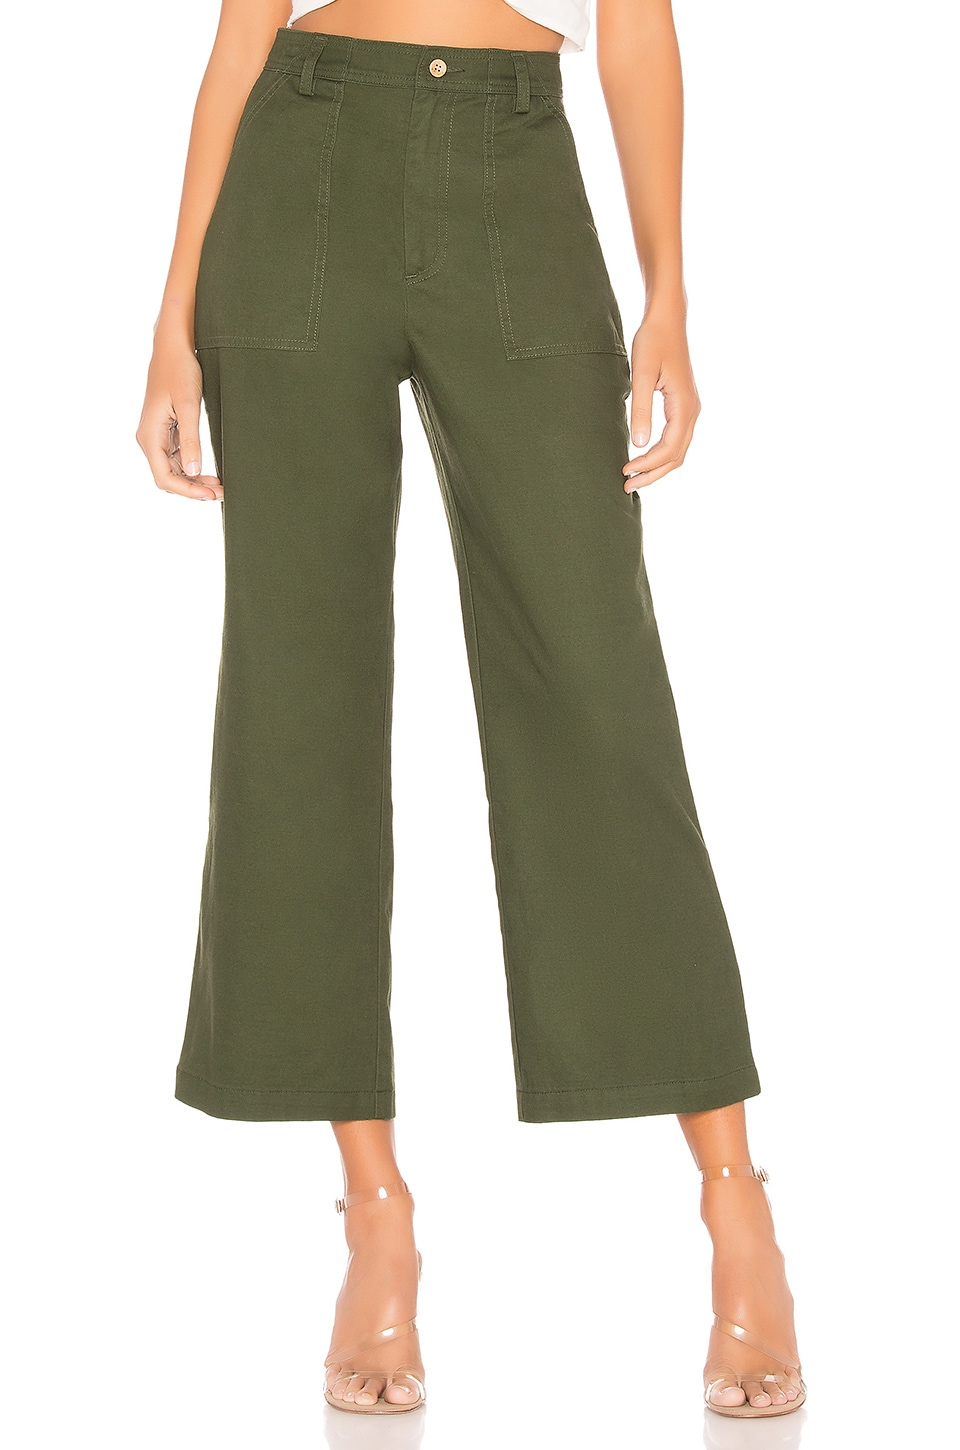 Tularosa Avion Pants in Green